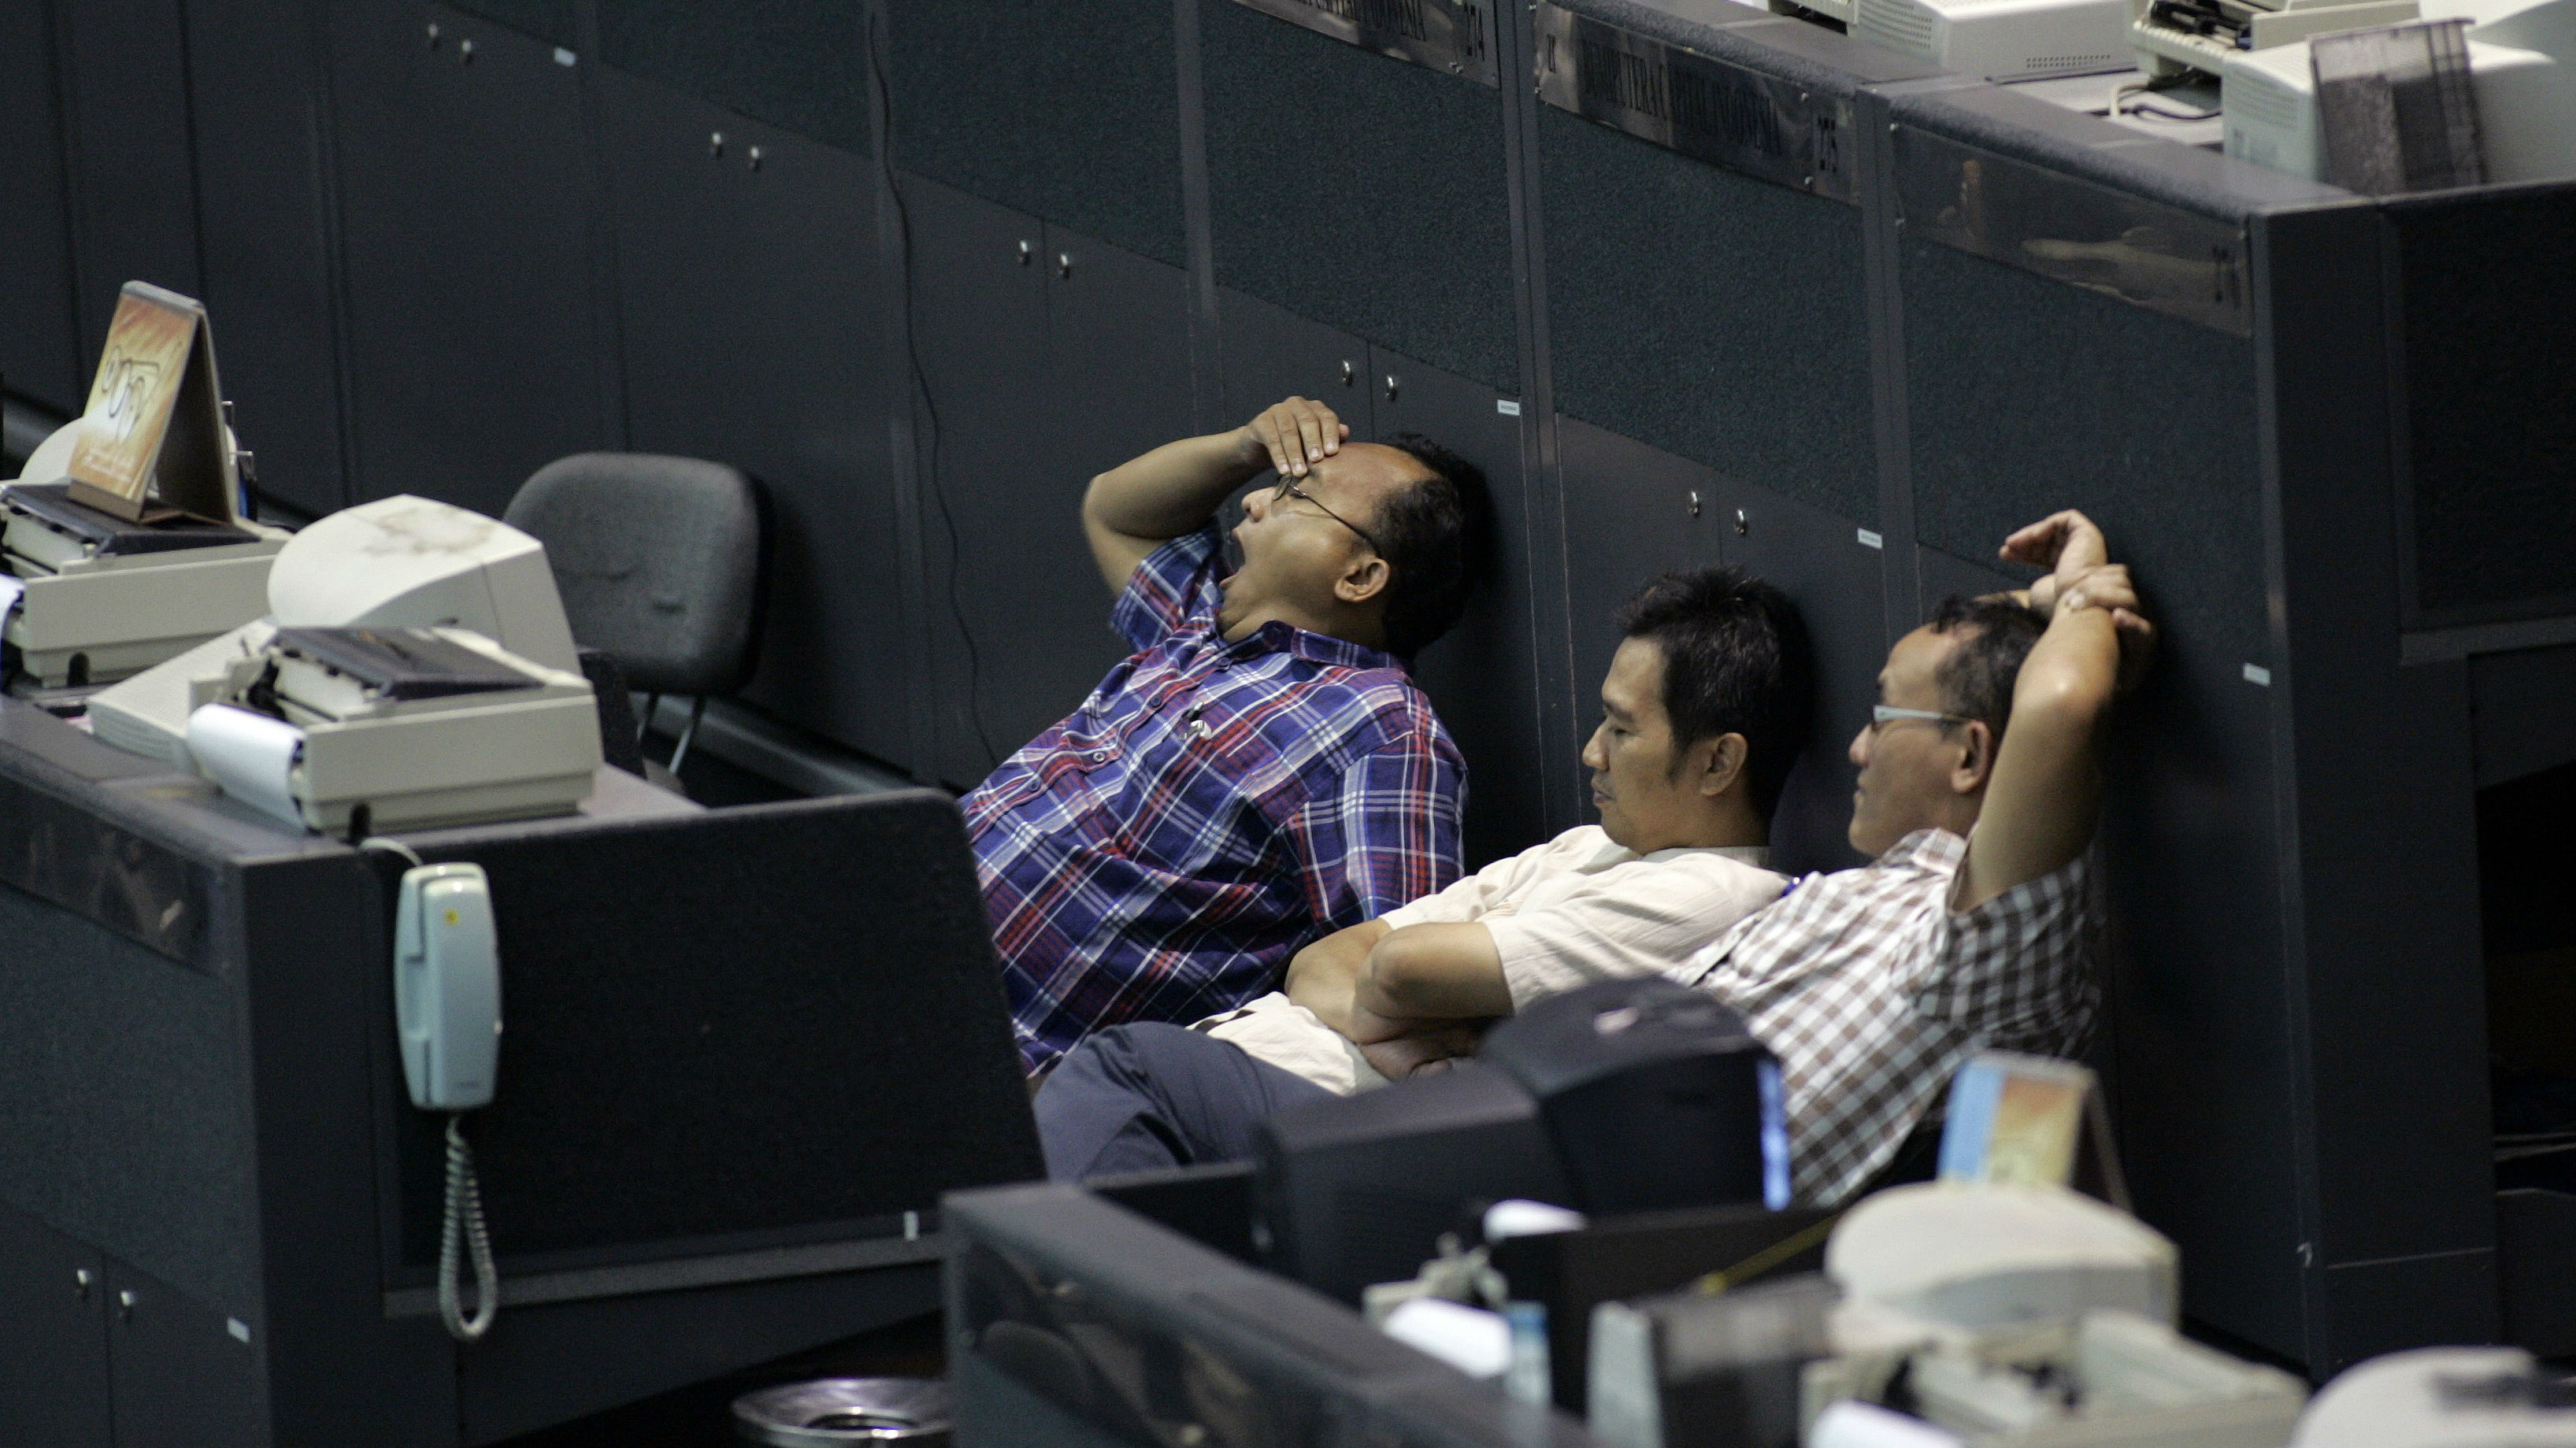 A stockbroker relax at a closed Indonesia Stock Exchange in Jakarta October 10, 2008. Indonesia dropped plans to reopen its stock market on Friday morning after a two-day suspension and despite policy makers unveiling new measures aimed at calming fears that Southeast Asia's largest economy faces a new crisis.